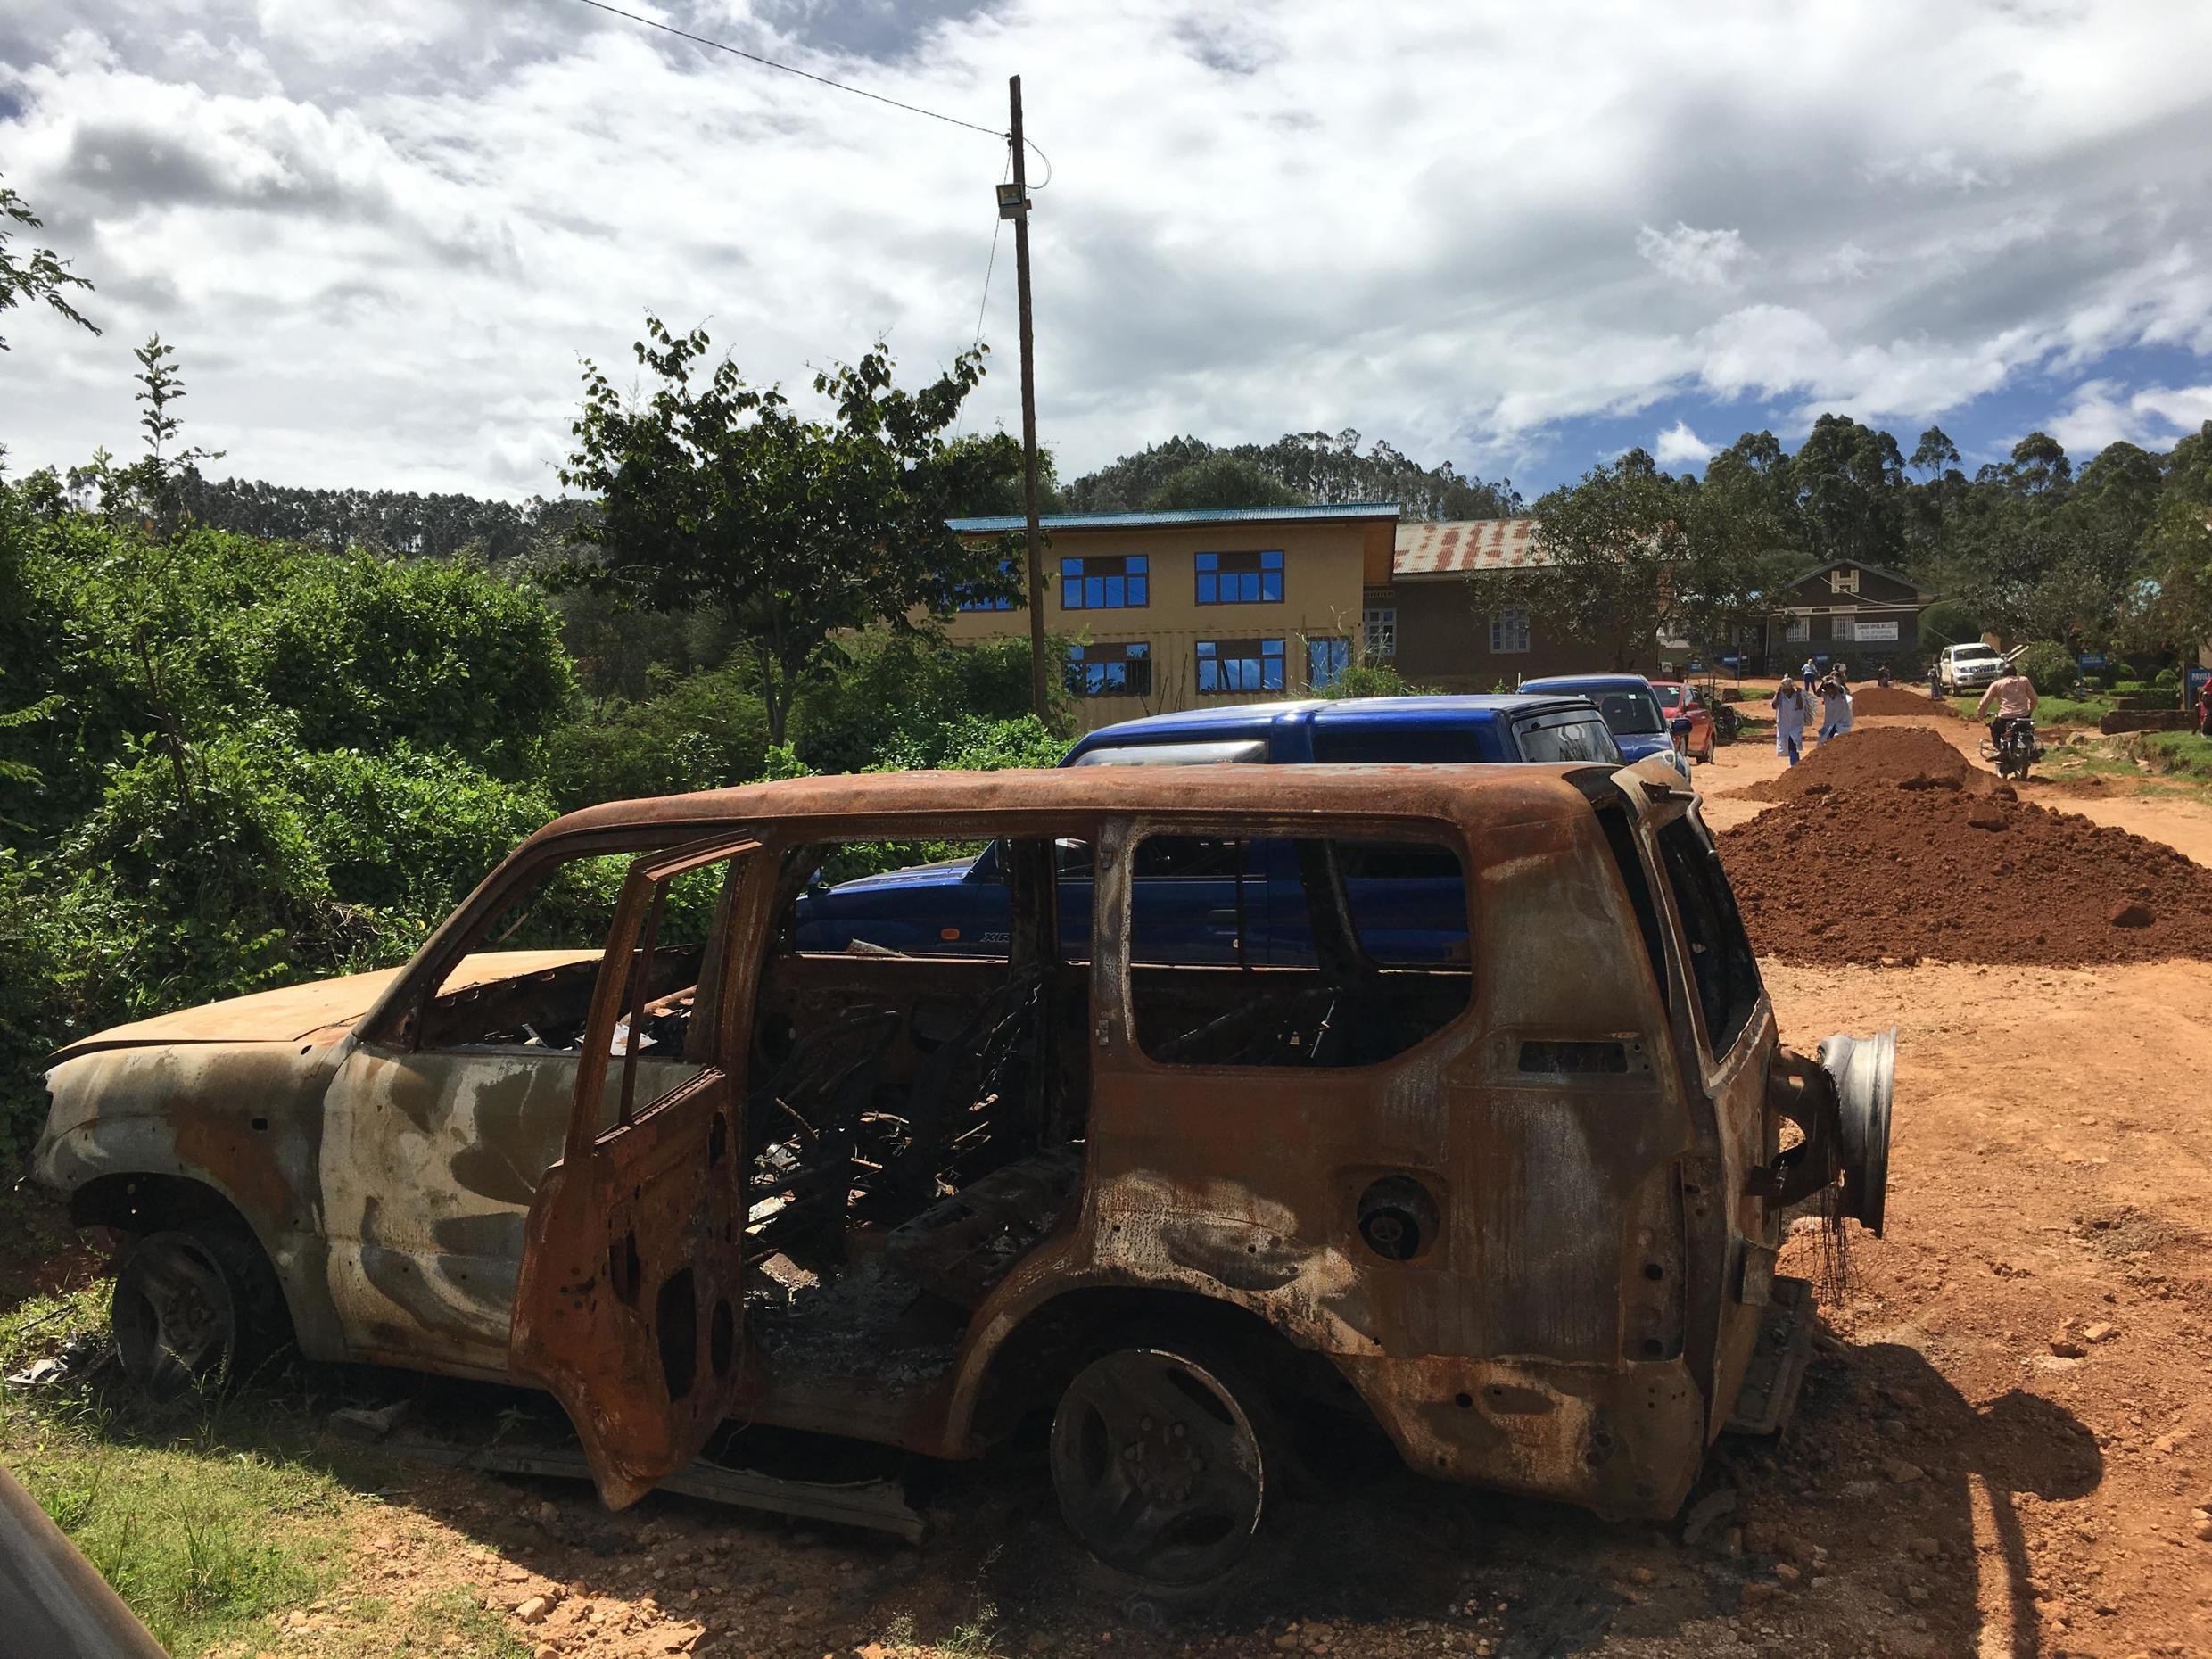 This car was set on fire at Catholic University of Graben hospital, Butembo, DRC, close to where Dr. Richard Valery Mouzoko Kiboung was killed in April